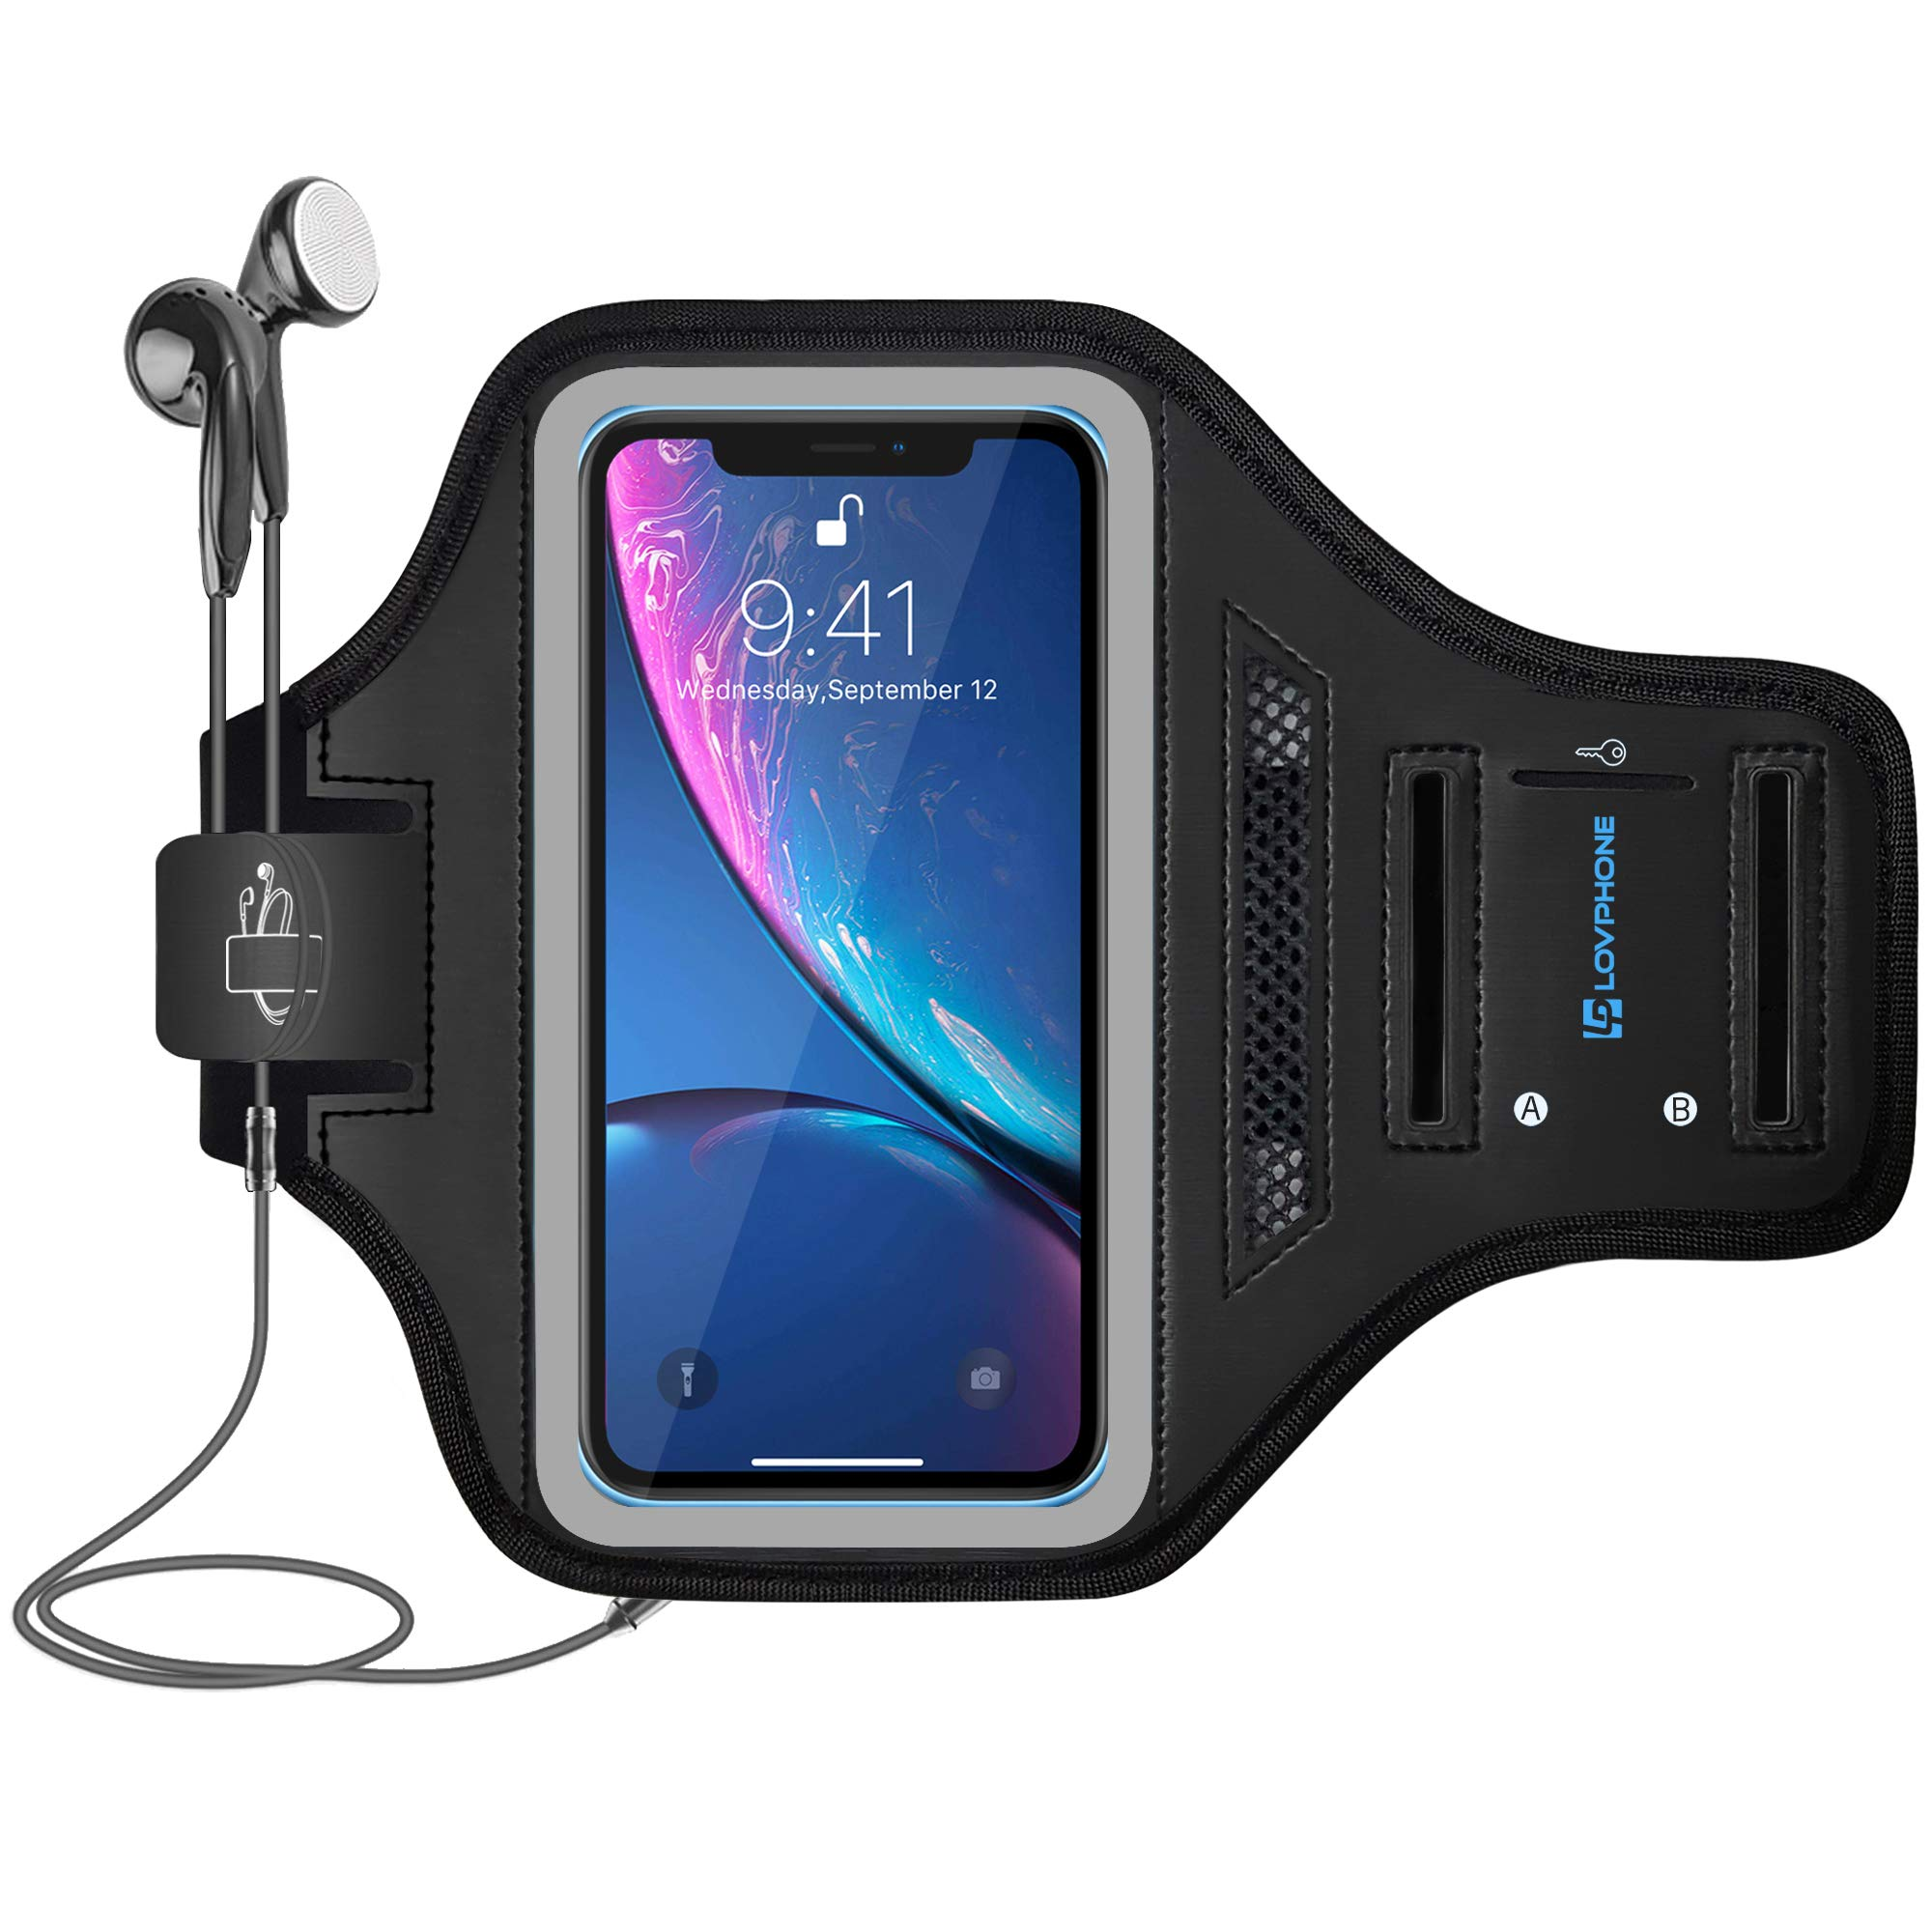 LOVPHONE iPhone 11 Pro Max/iPhone 11 Pro/iPhone Xs Max/iPhone XR Armband, Waterproof Sport Outdoor Gym Case with Running Key Holder Card Slot Phone Case Bag Armband (Gray)